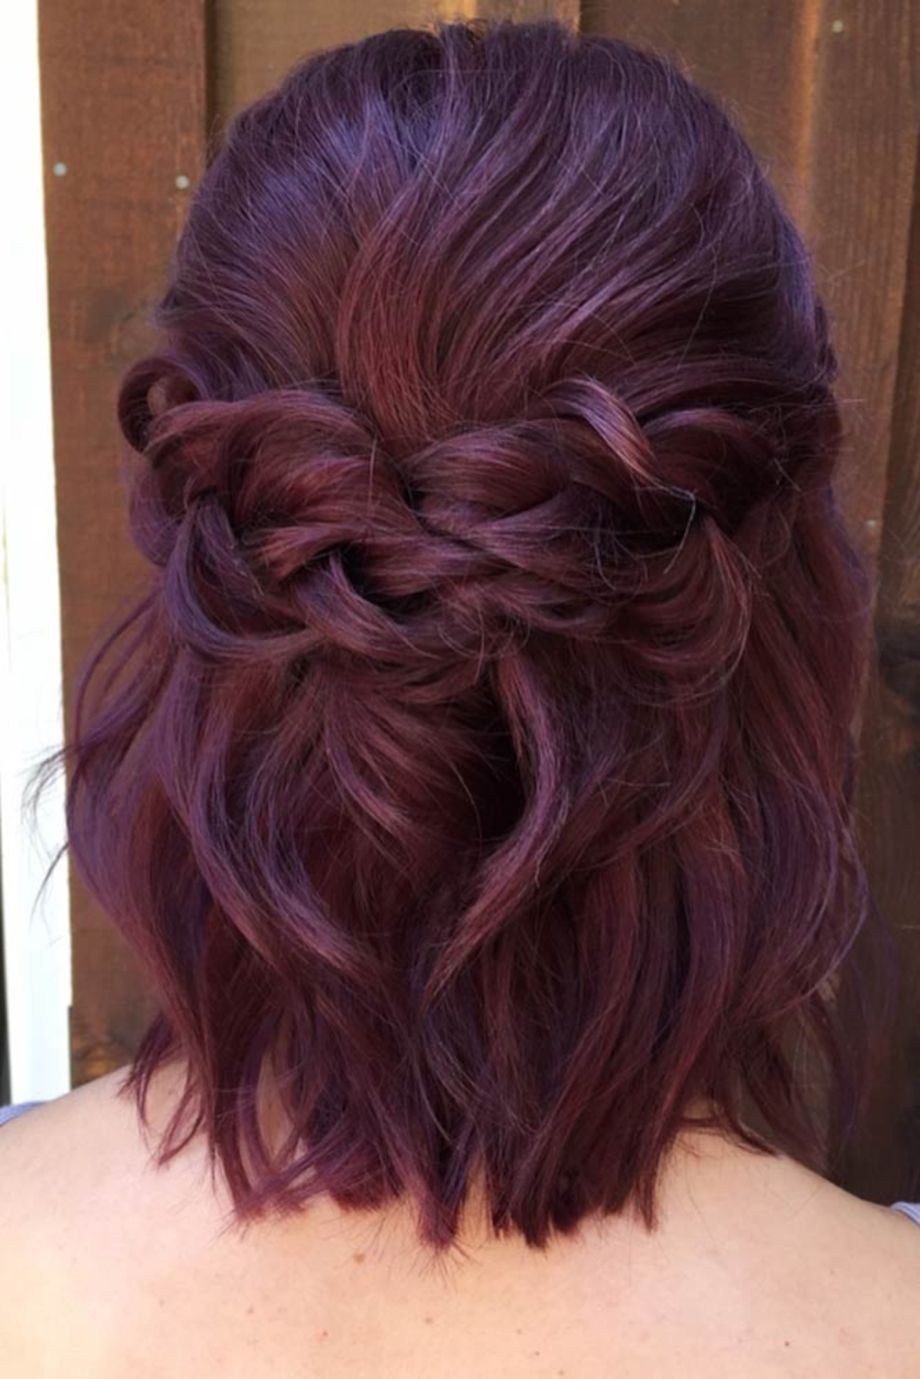 Stunning Wedding Hairstyles Ideas For Shoulder Length Hair 28 Vis Wed Braided Hairstyles For Wedding Short Wedding Hair Wedding Hair Half